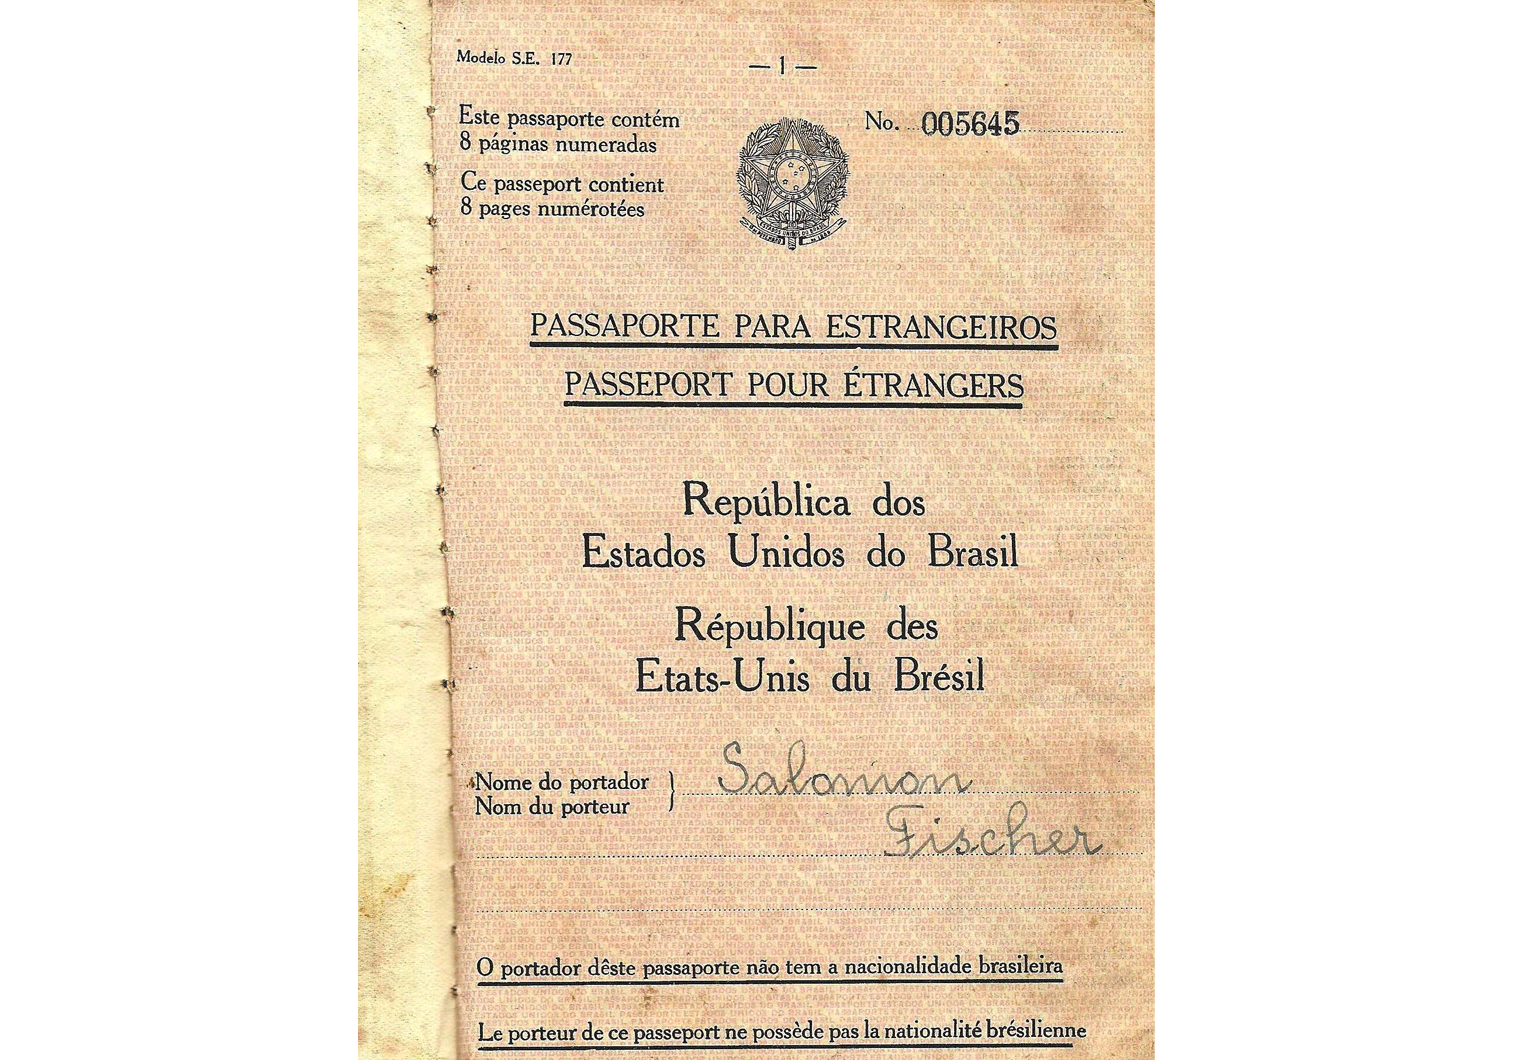 Brazilian stateless passport